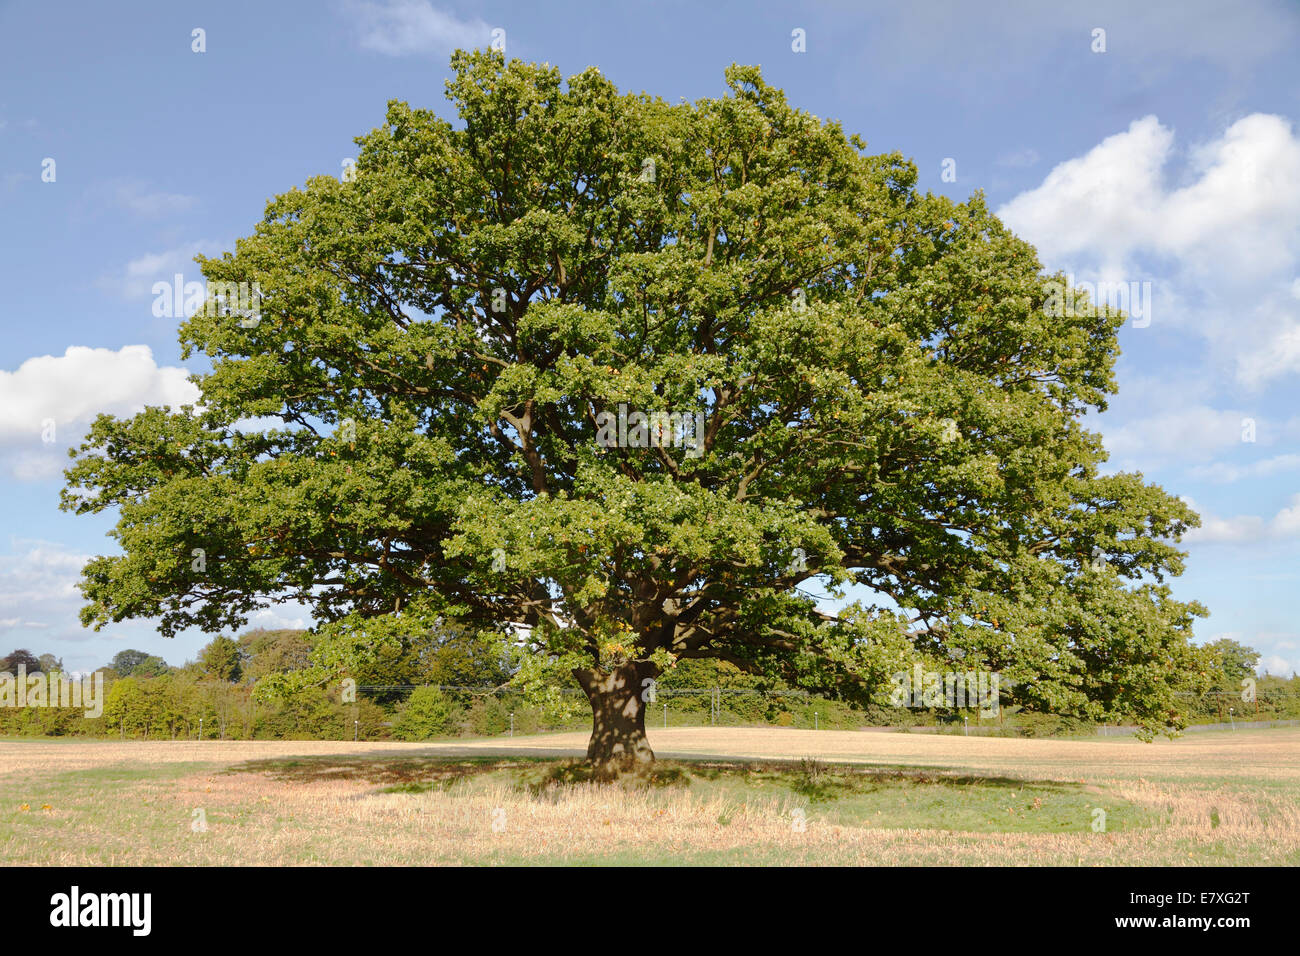 Big, old oak tree, common oak, English oak, Quercus robur, with green leaves on an early autumn blue sky. Stock Photo